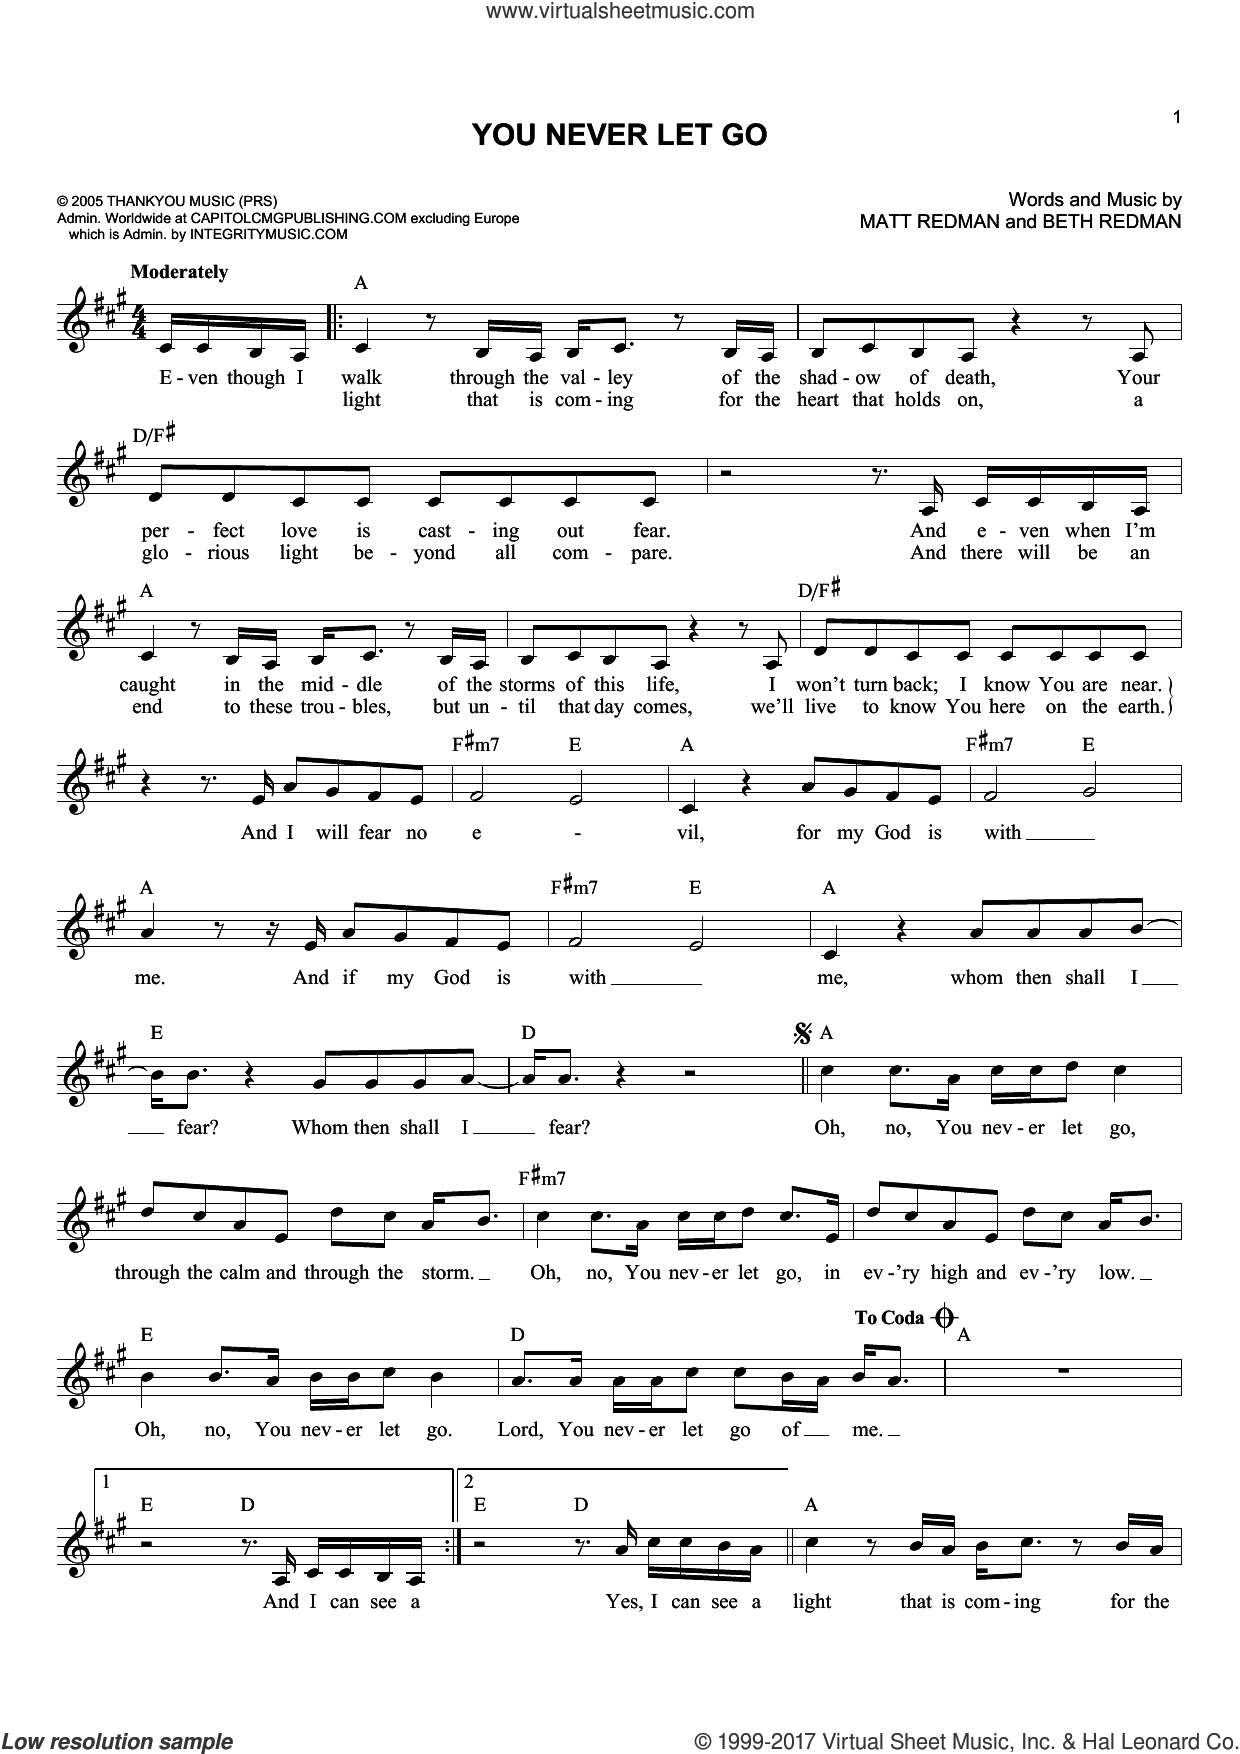 You Never Let Go sheet music for voice and other instruments (fake book) by Matt Redman and Beth Redman, intermediate